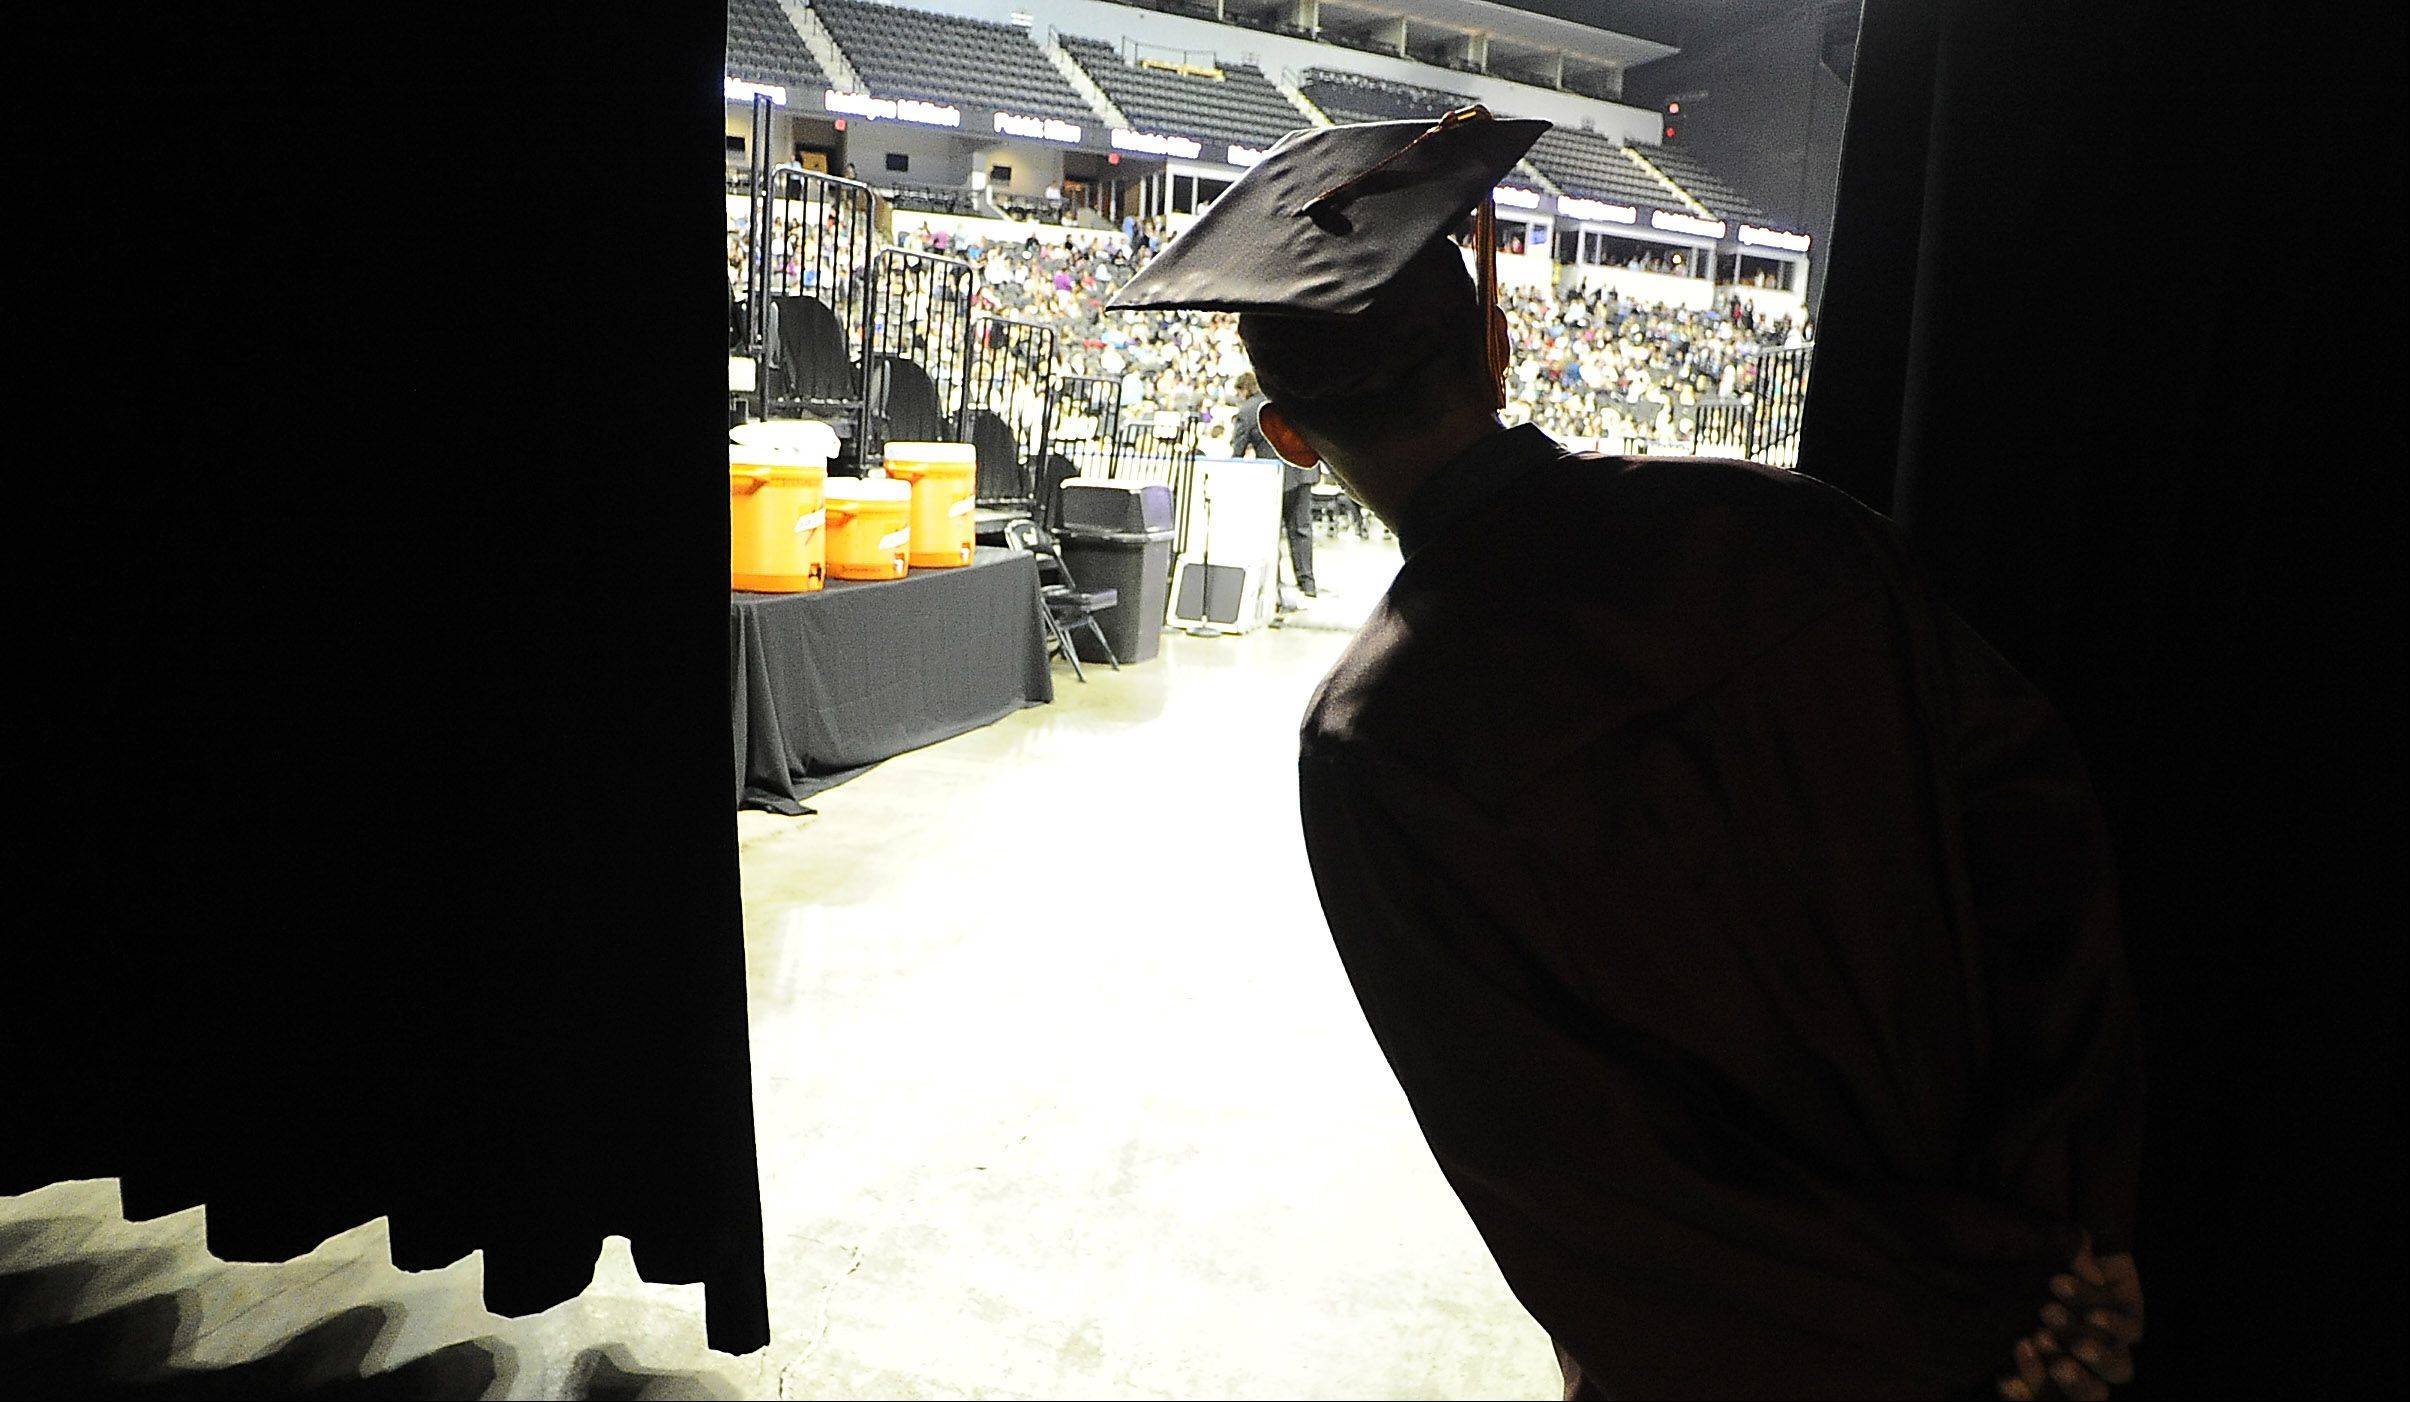 Nathaniel Lozano, 18, of Hanover Park peeks from behind a curtain as he looks at the huge crowd in attendance for the Schaumburg High School forty-first annual commencement at the Sears Centre in Hoffman Estates on Sunday.